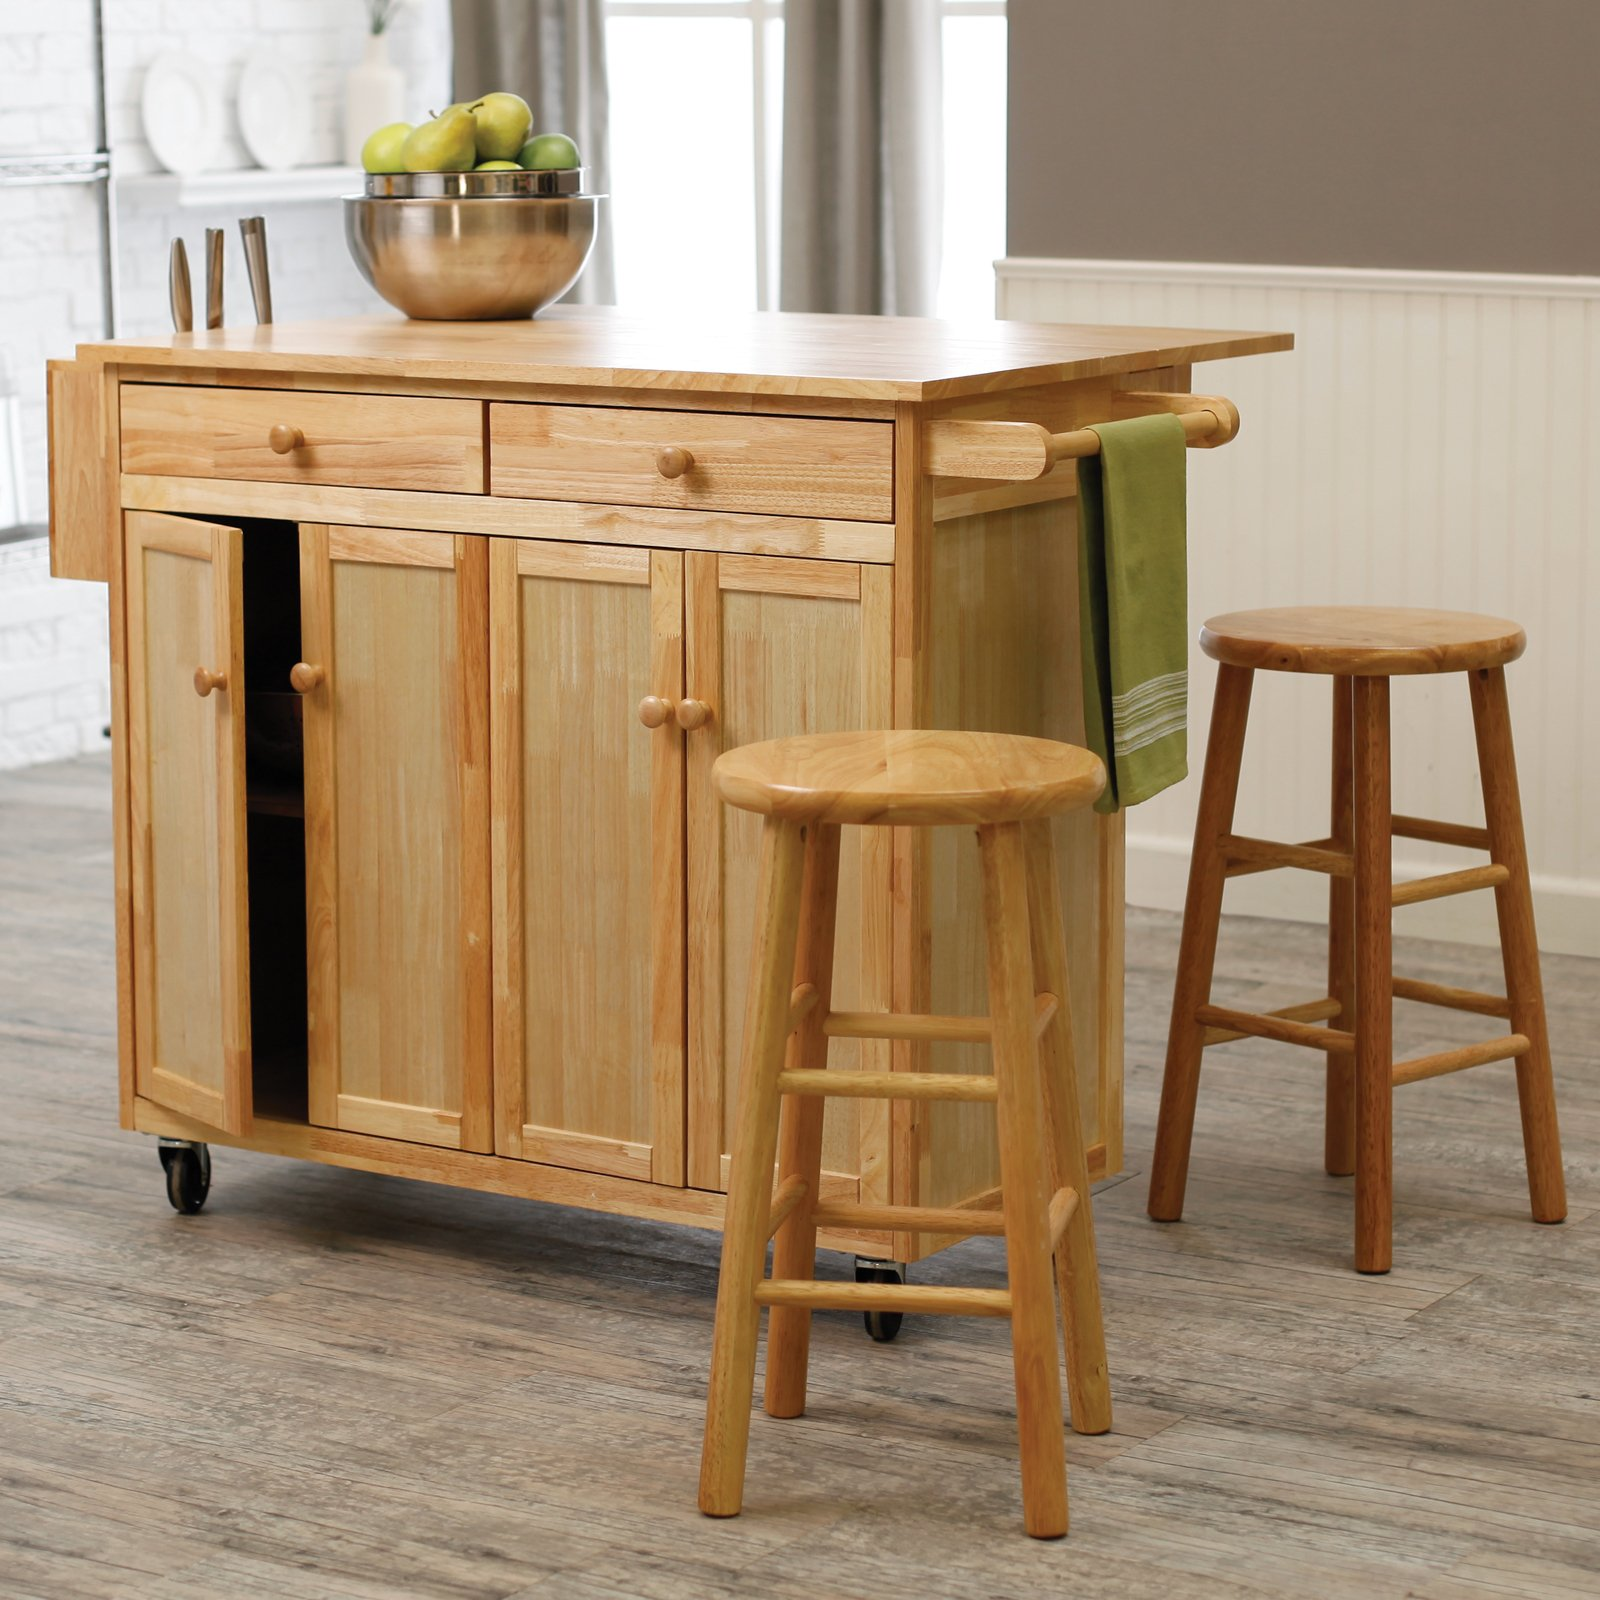 Ikea Kitchen Island With Stools Practical Movable Island Ikea Designs For Your Small Kitchen